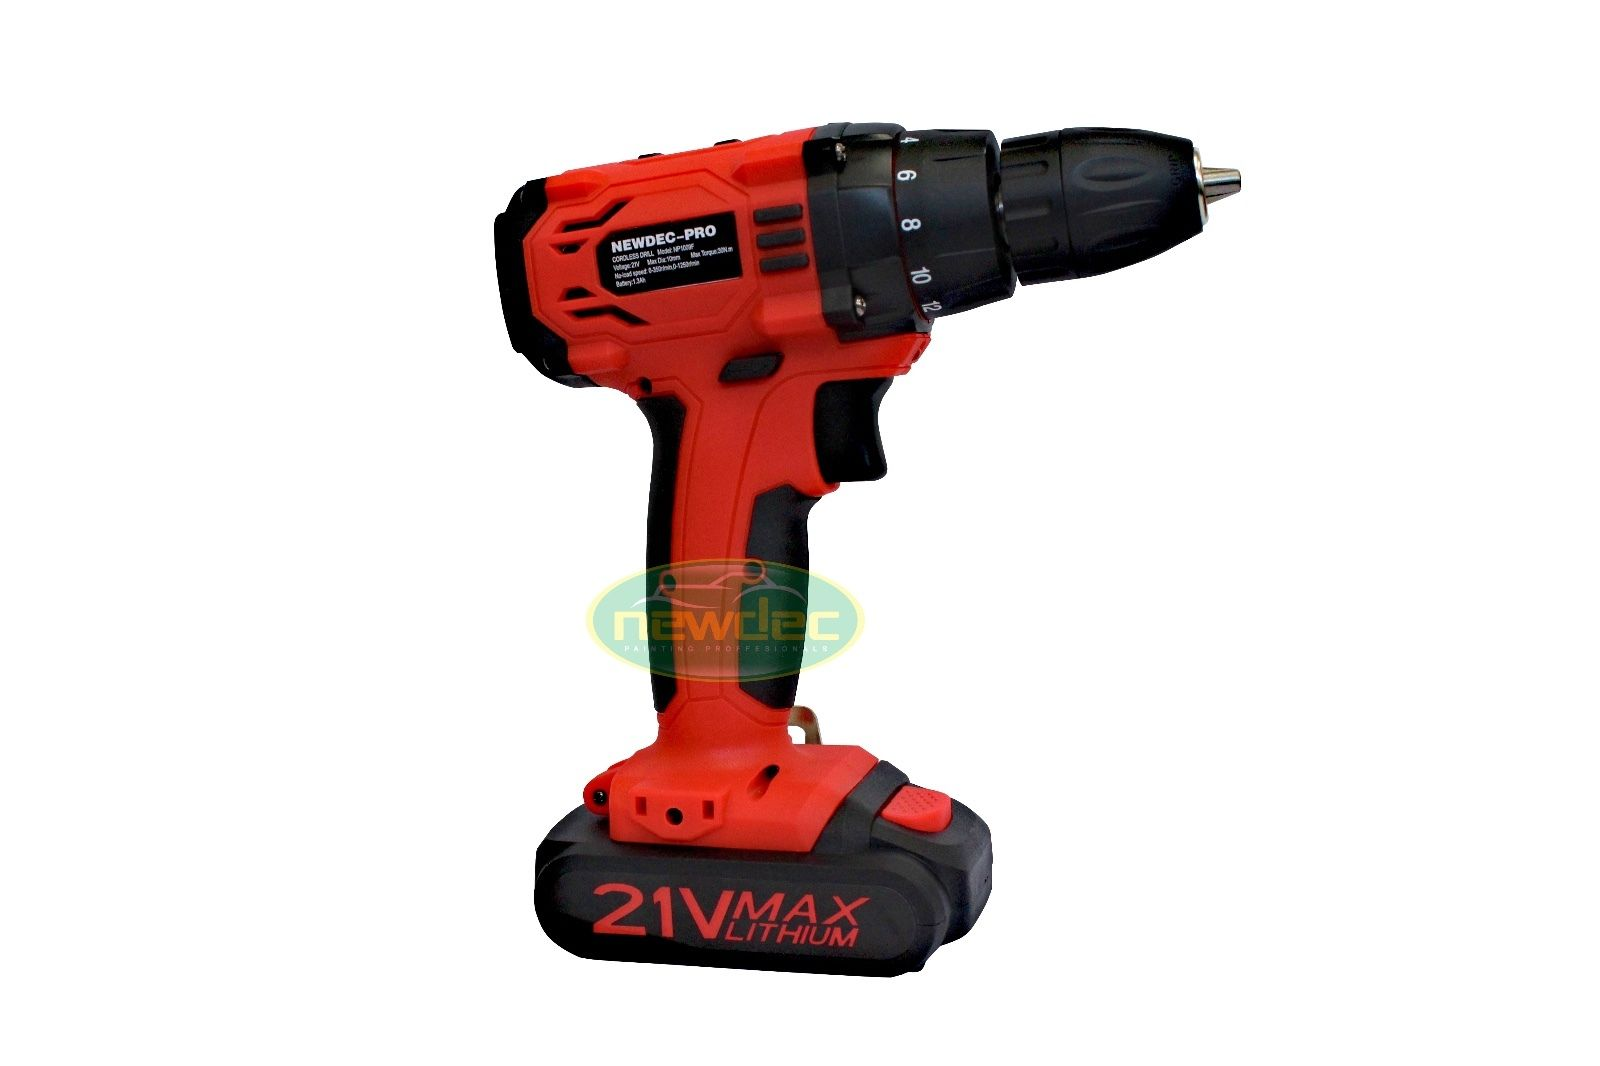 HEAVY DUTY 21V CORDLESS DRILL KIT WITH CASE